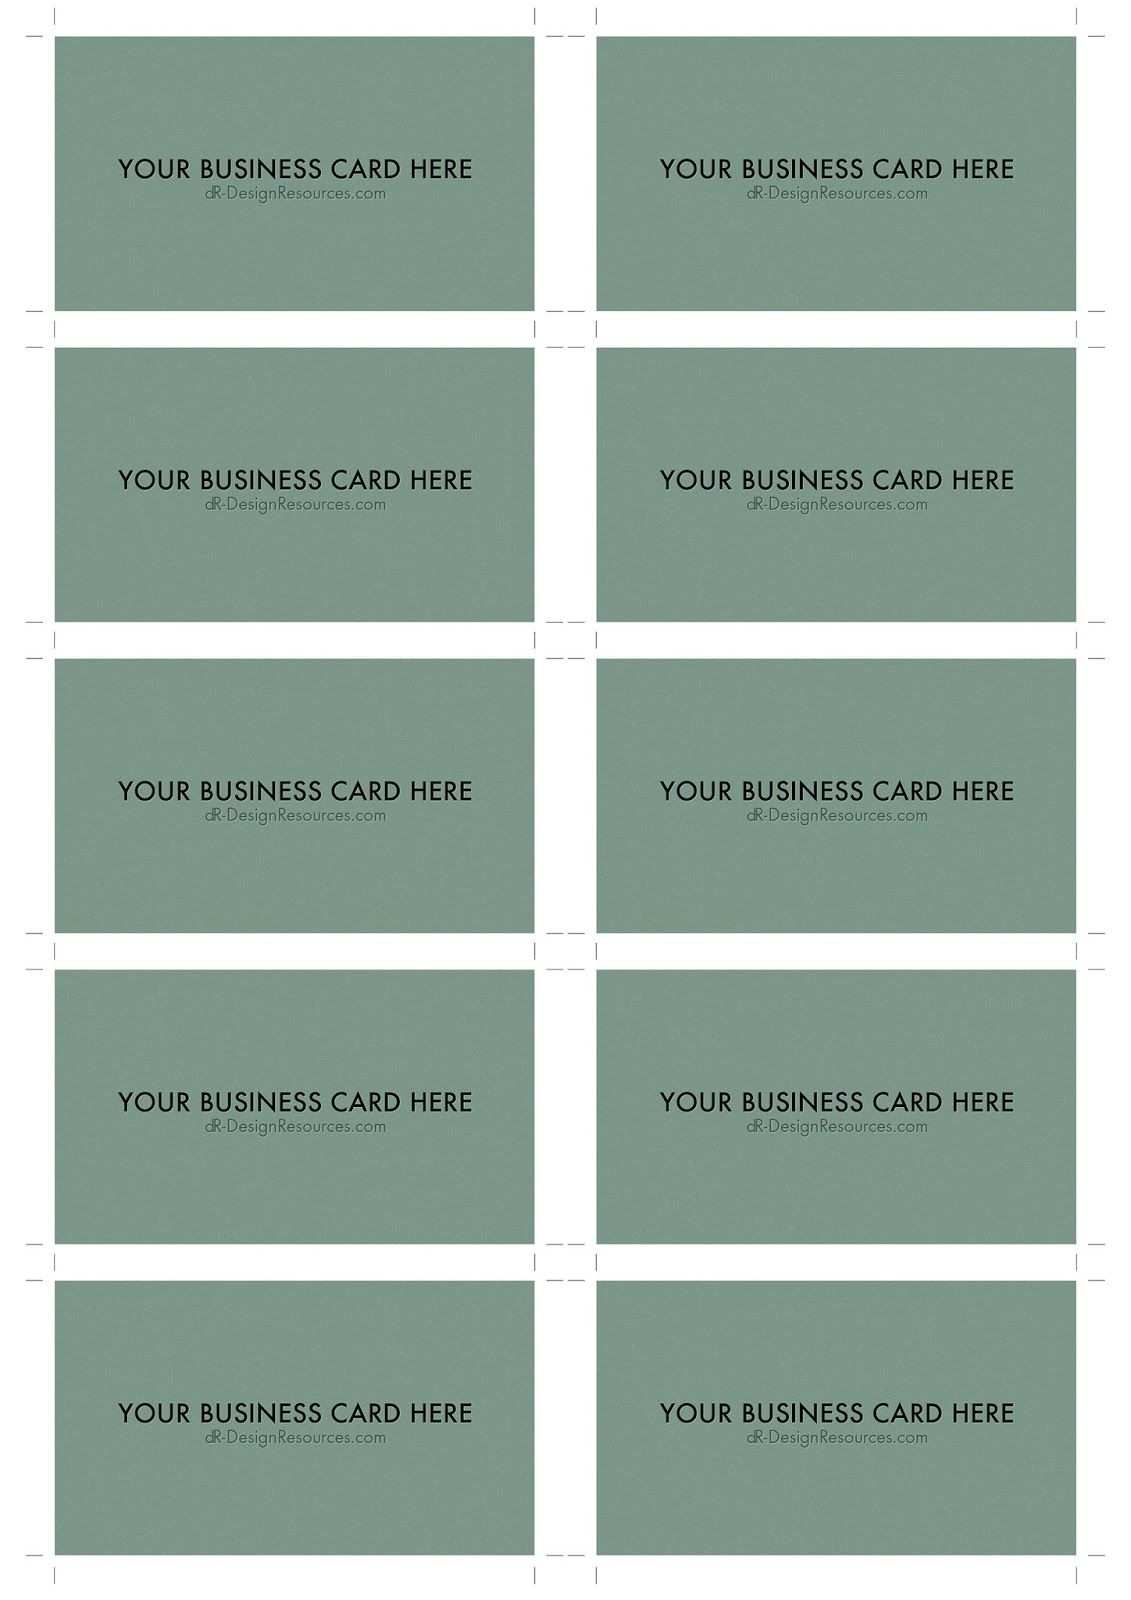 15 Adding Business Card Sheet Template Word in Word for Business Card Sheet Template Word